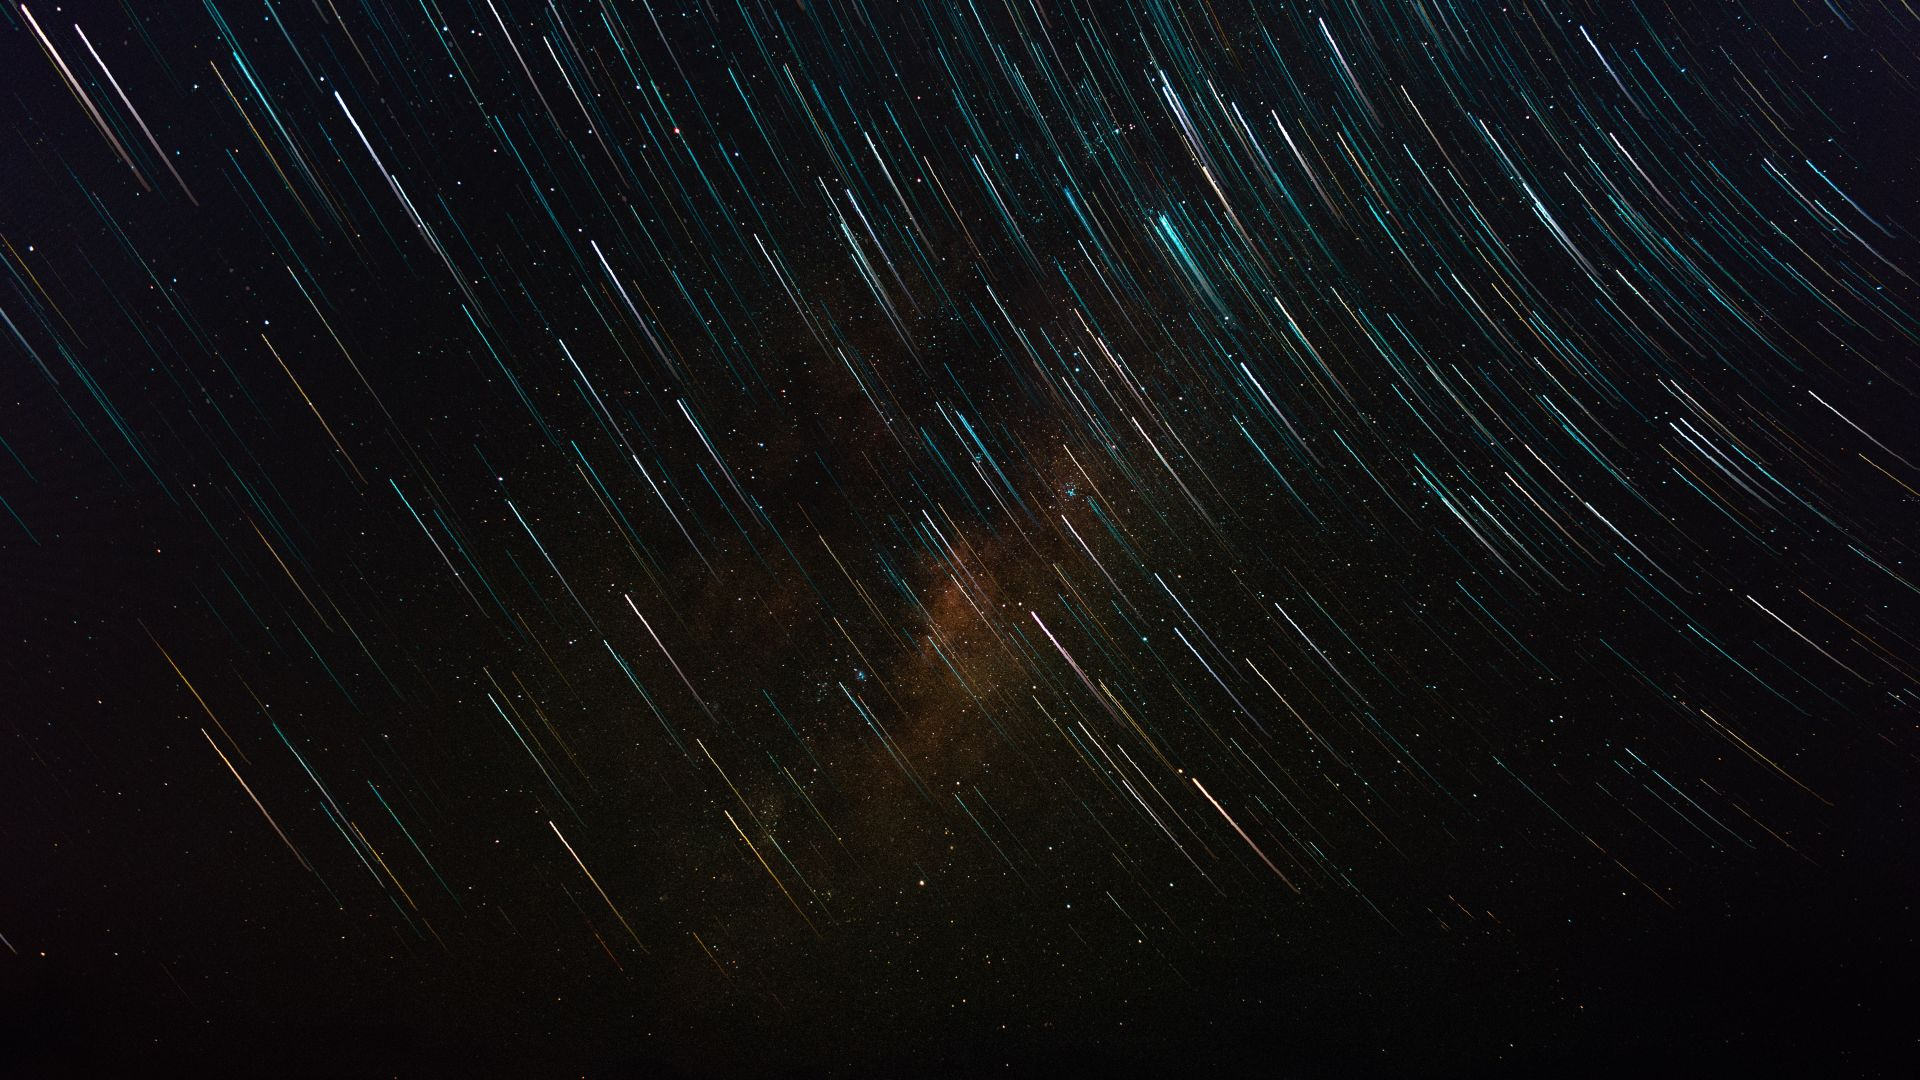 Звезды, небо, Stars, star trail, galaxy, sky, 4K, 6K (horizontal)